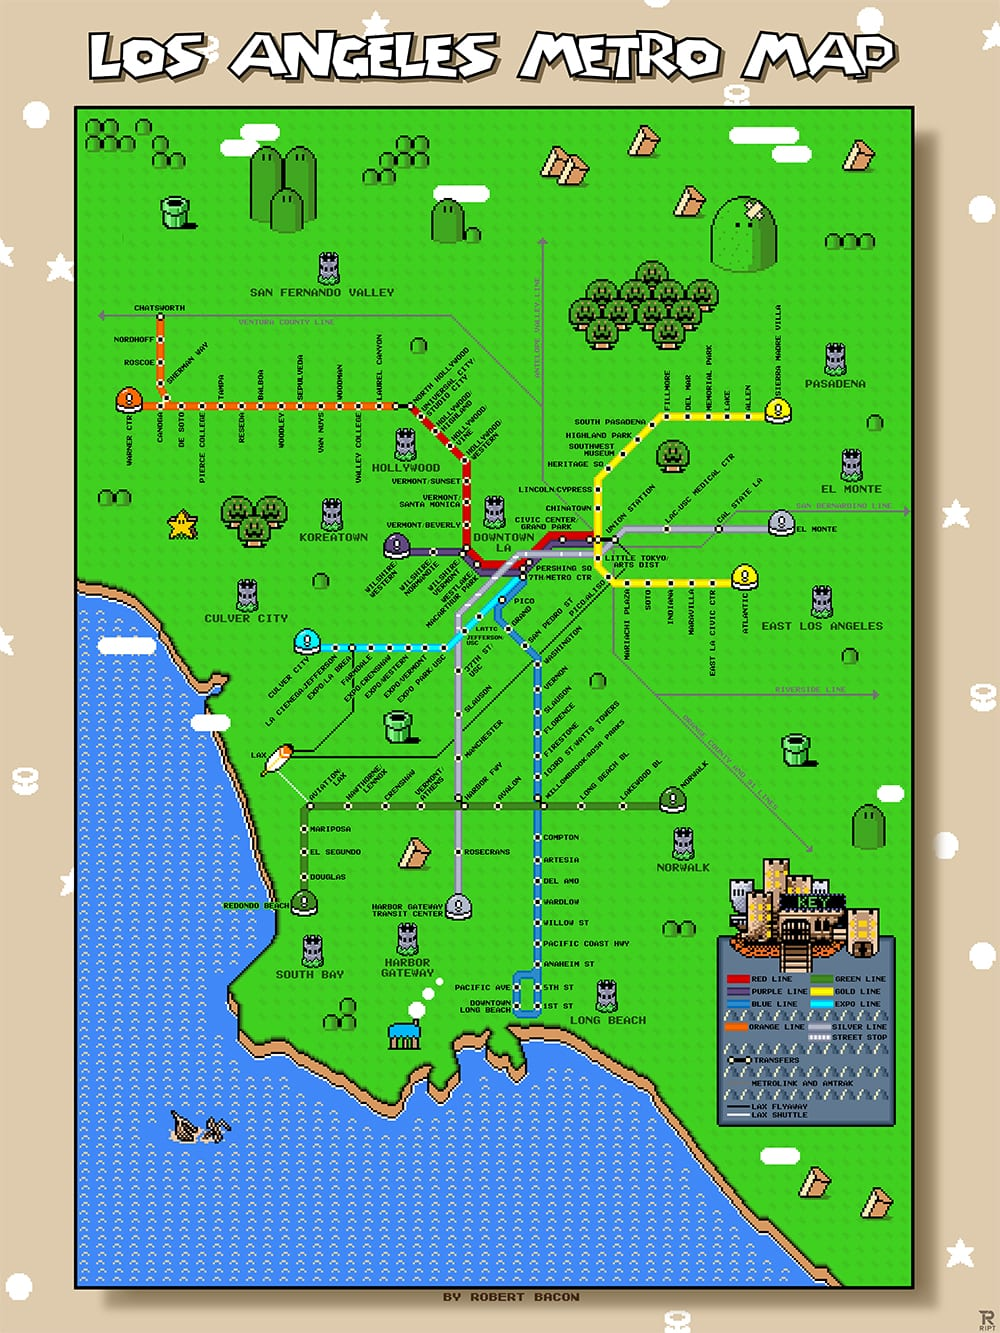 L.A. Metro Super Mario map (via ChicagoNow, created by Robert Bacon)